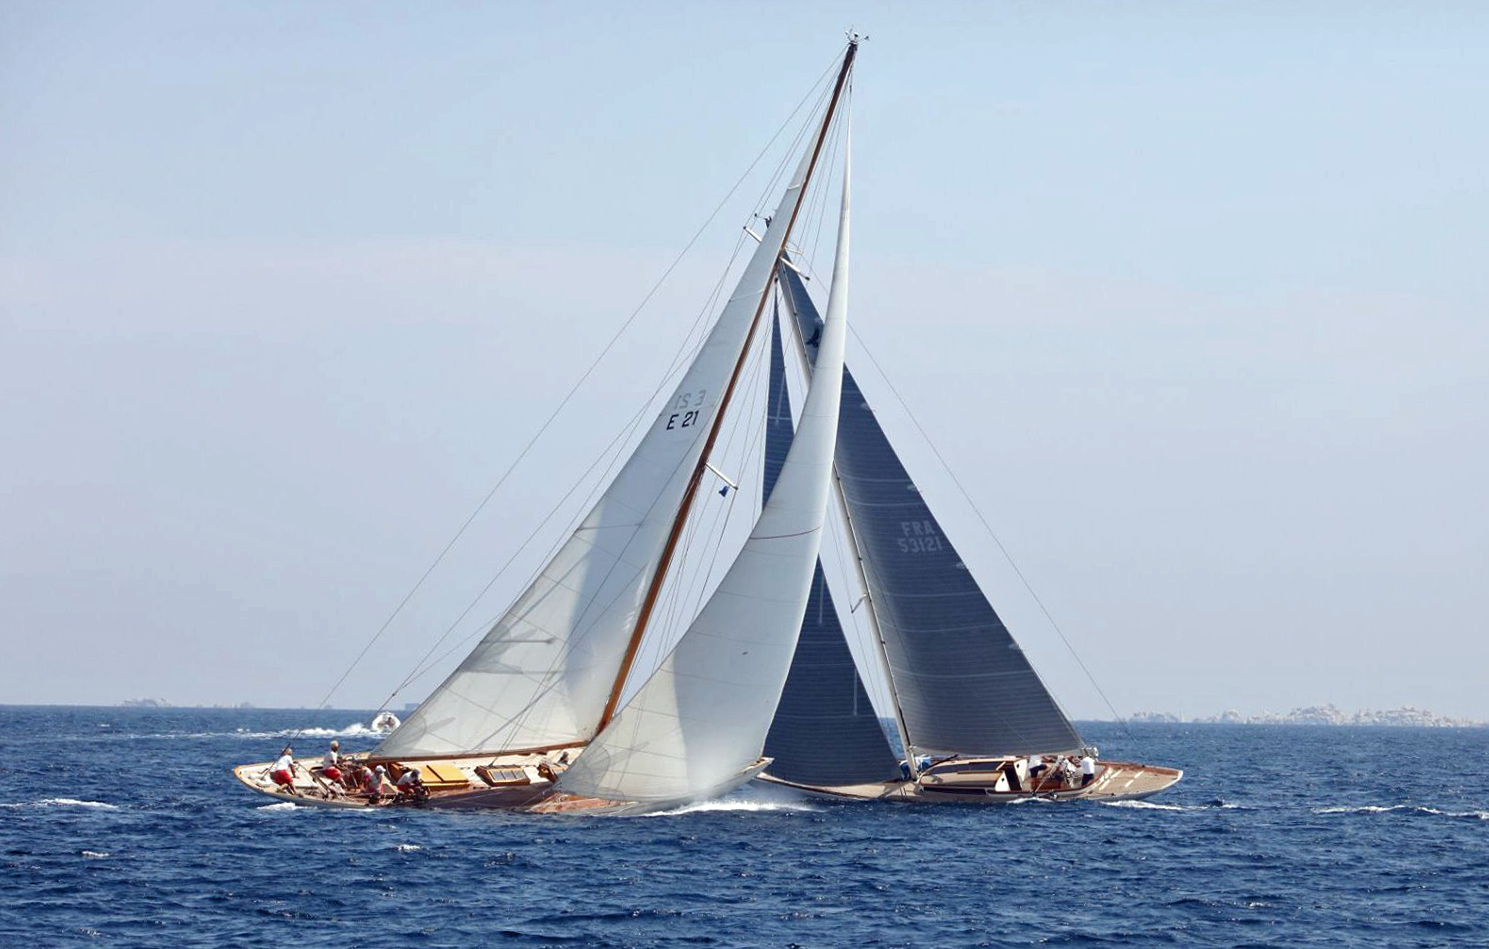 CC 2019 course 2 SY Eileen 1938 VS SY Quatre Quart 2019 photo Françoise Tafani DR